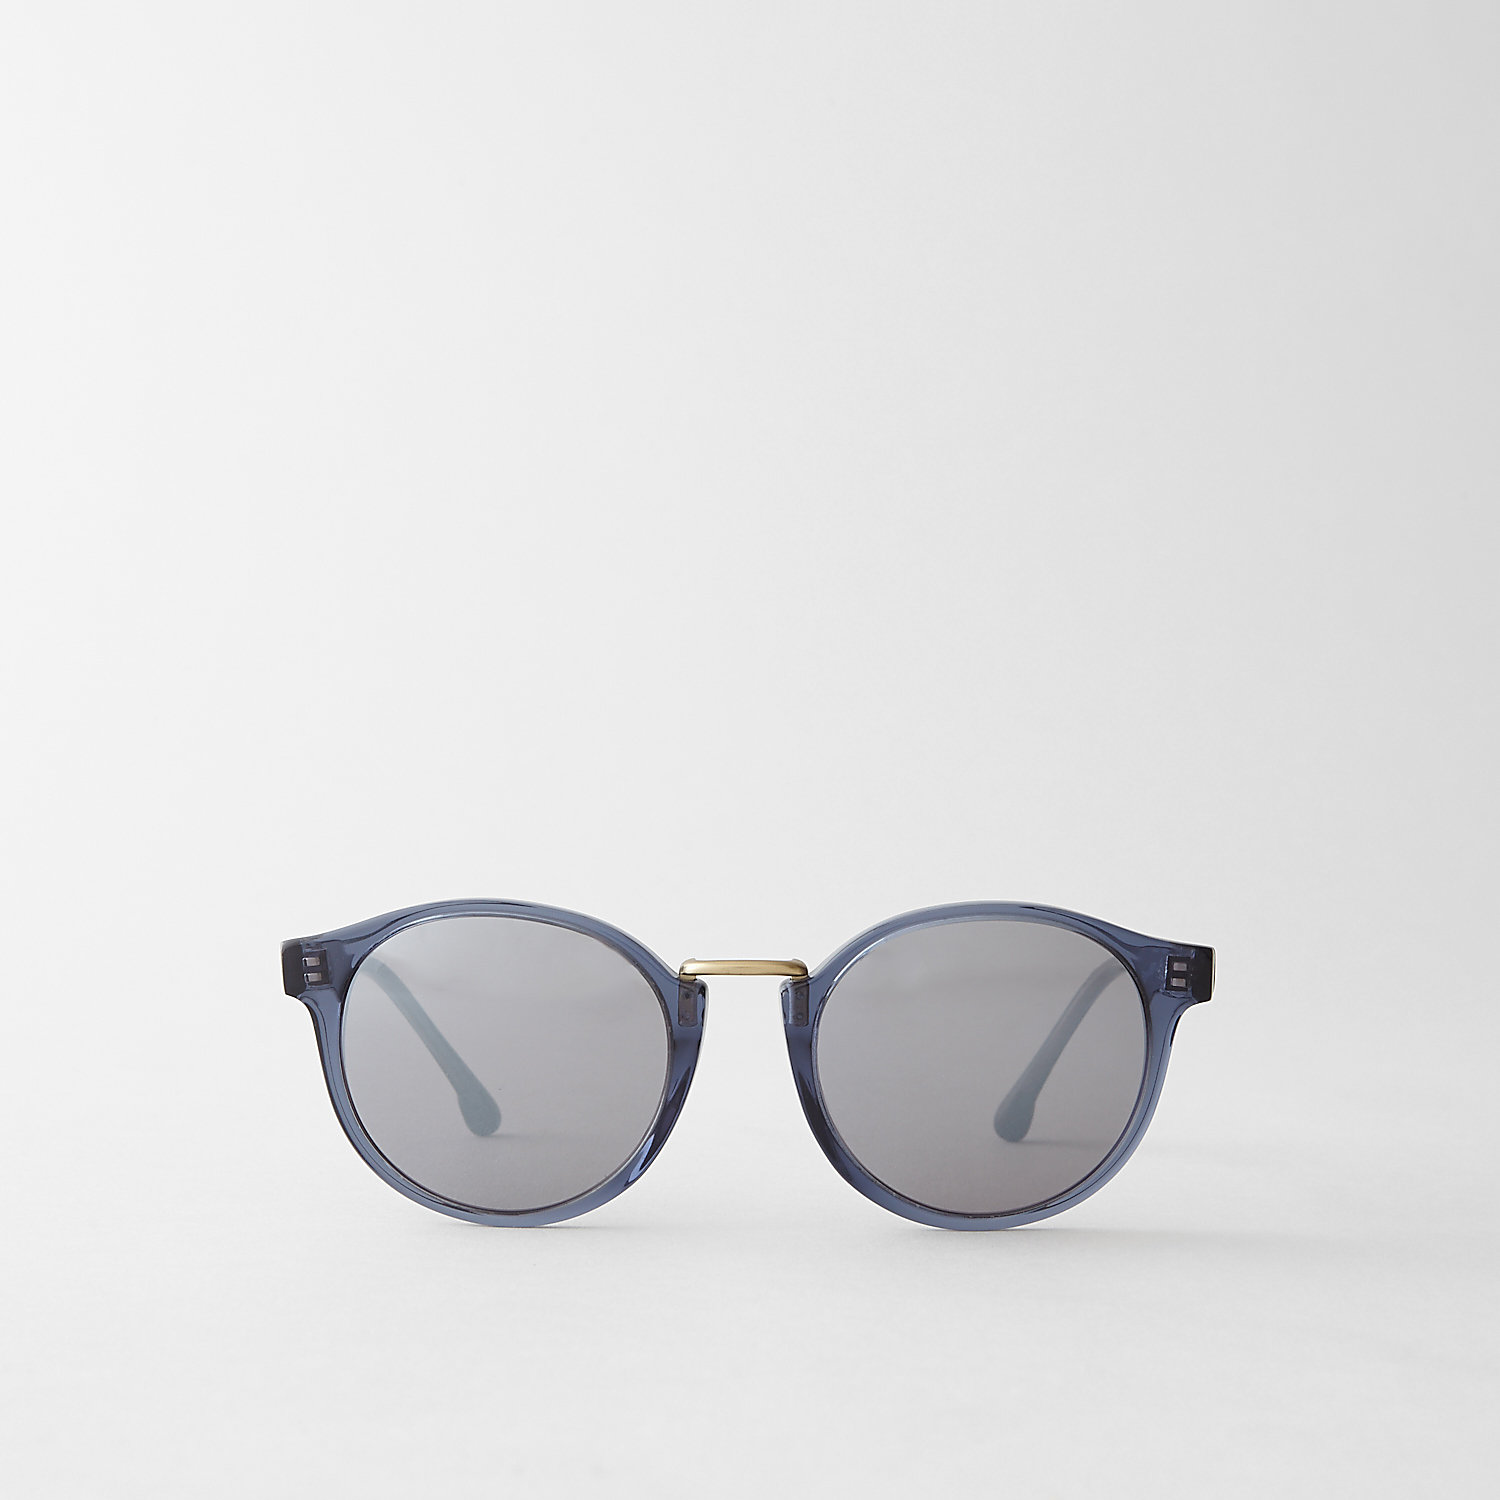 NAVY WENDELL SUNGLASSES